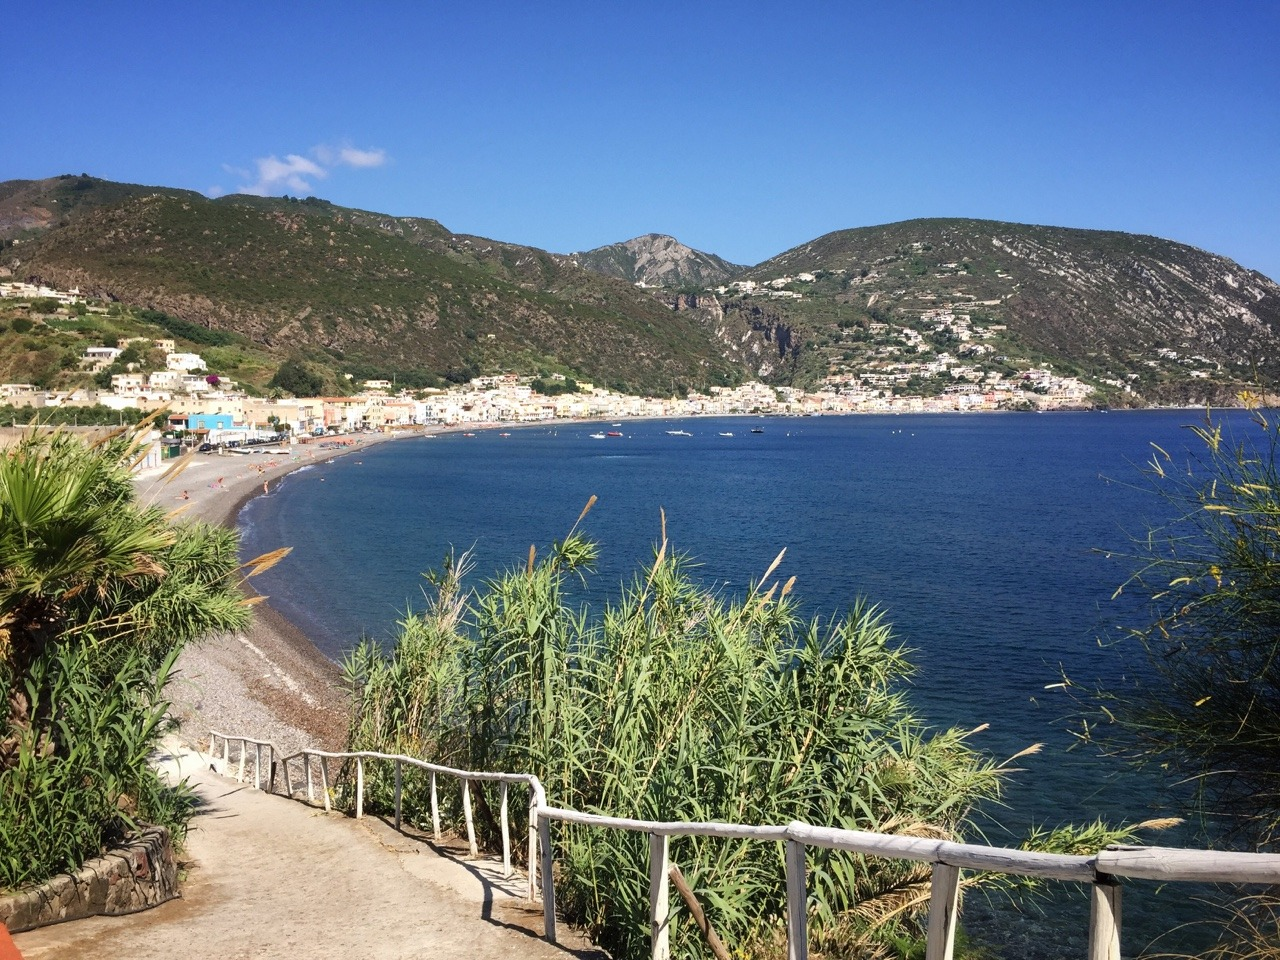 Canneto, on the eastern shore north of Lipari town.